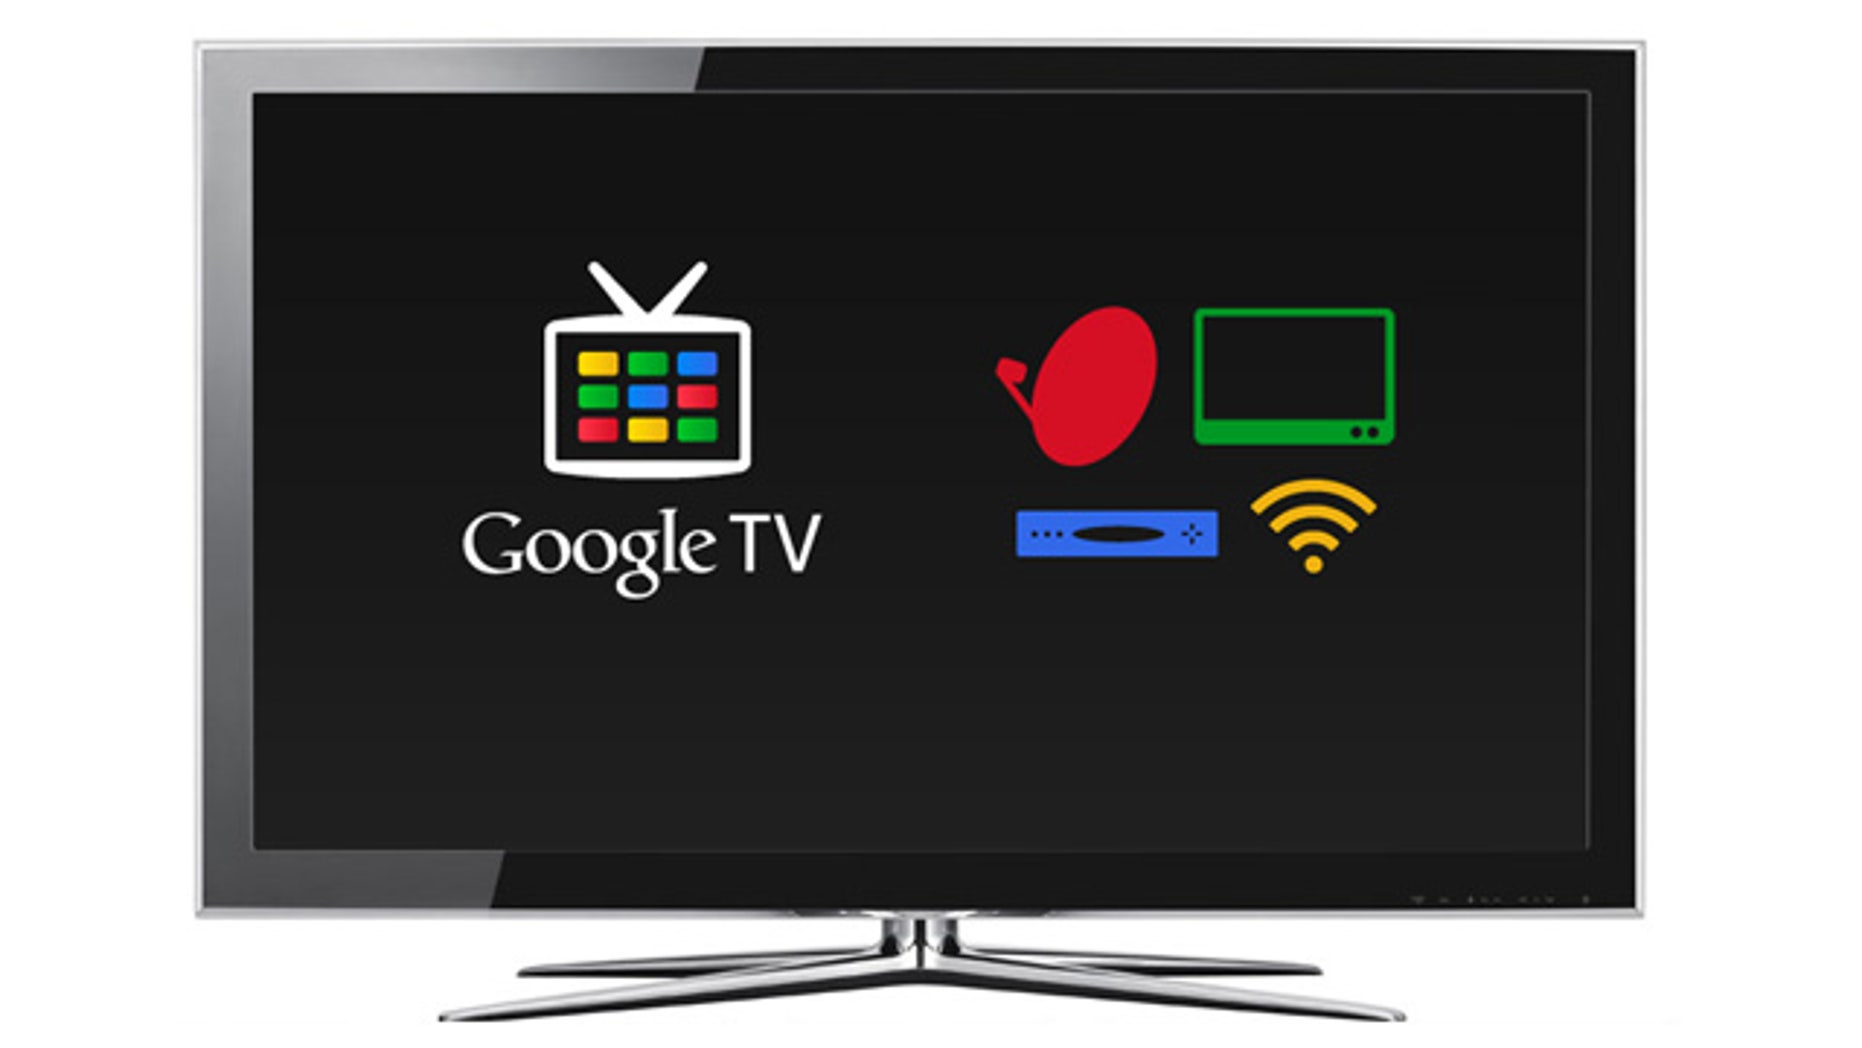 Google hopes to invade the living room with Google TV.